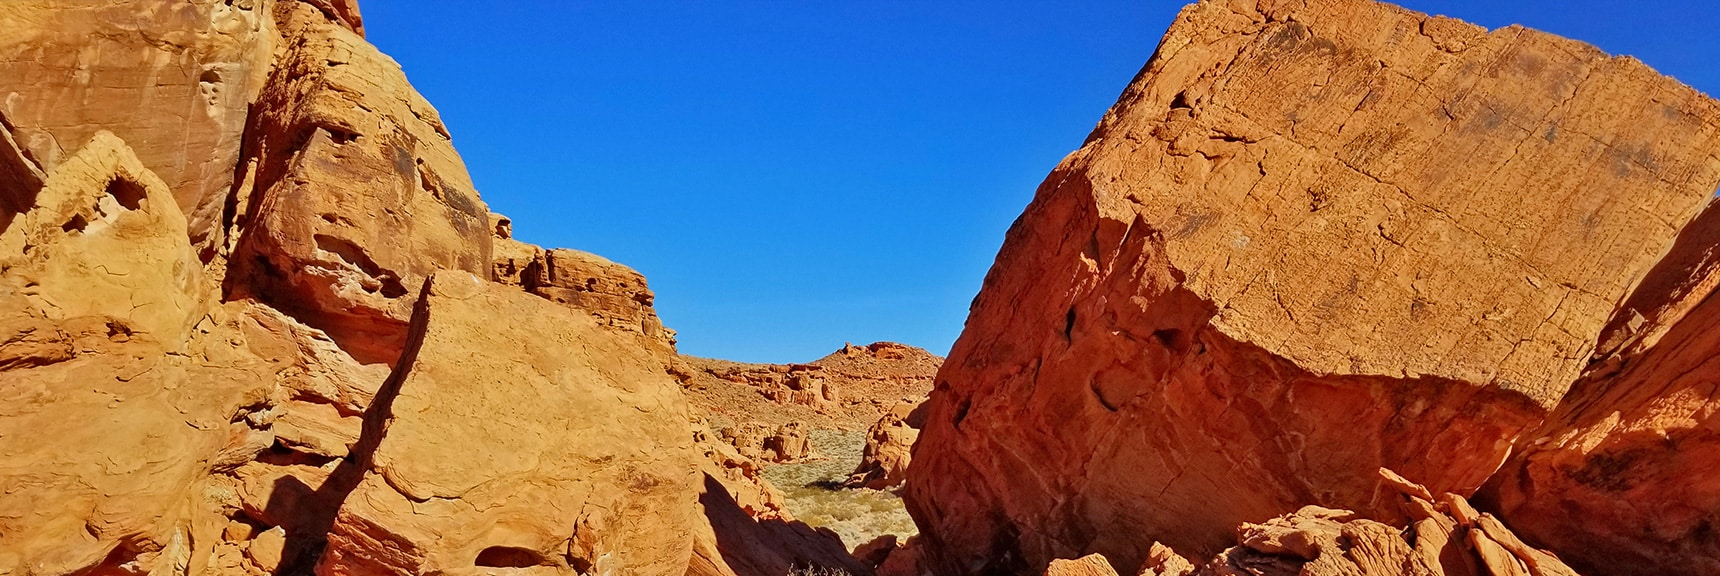 Bowl of Fire, Lake Mead National Recreation Area, Nevada